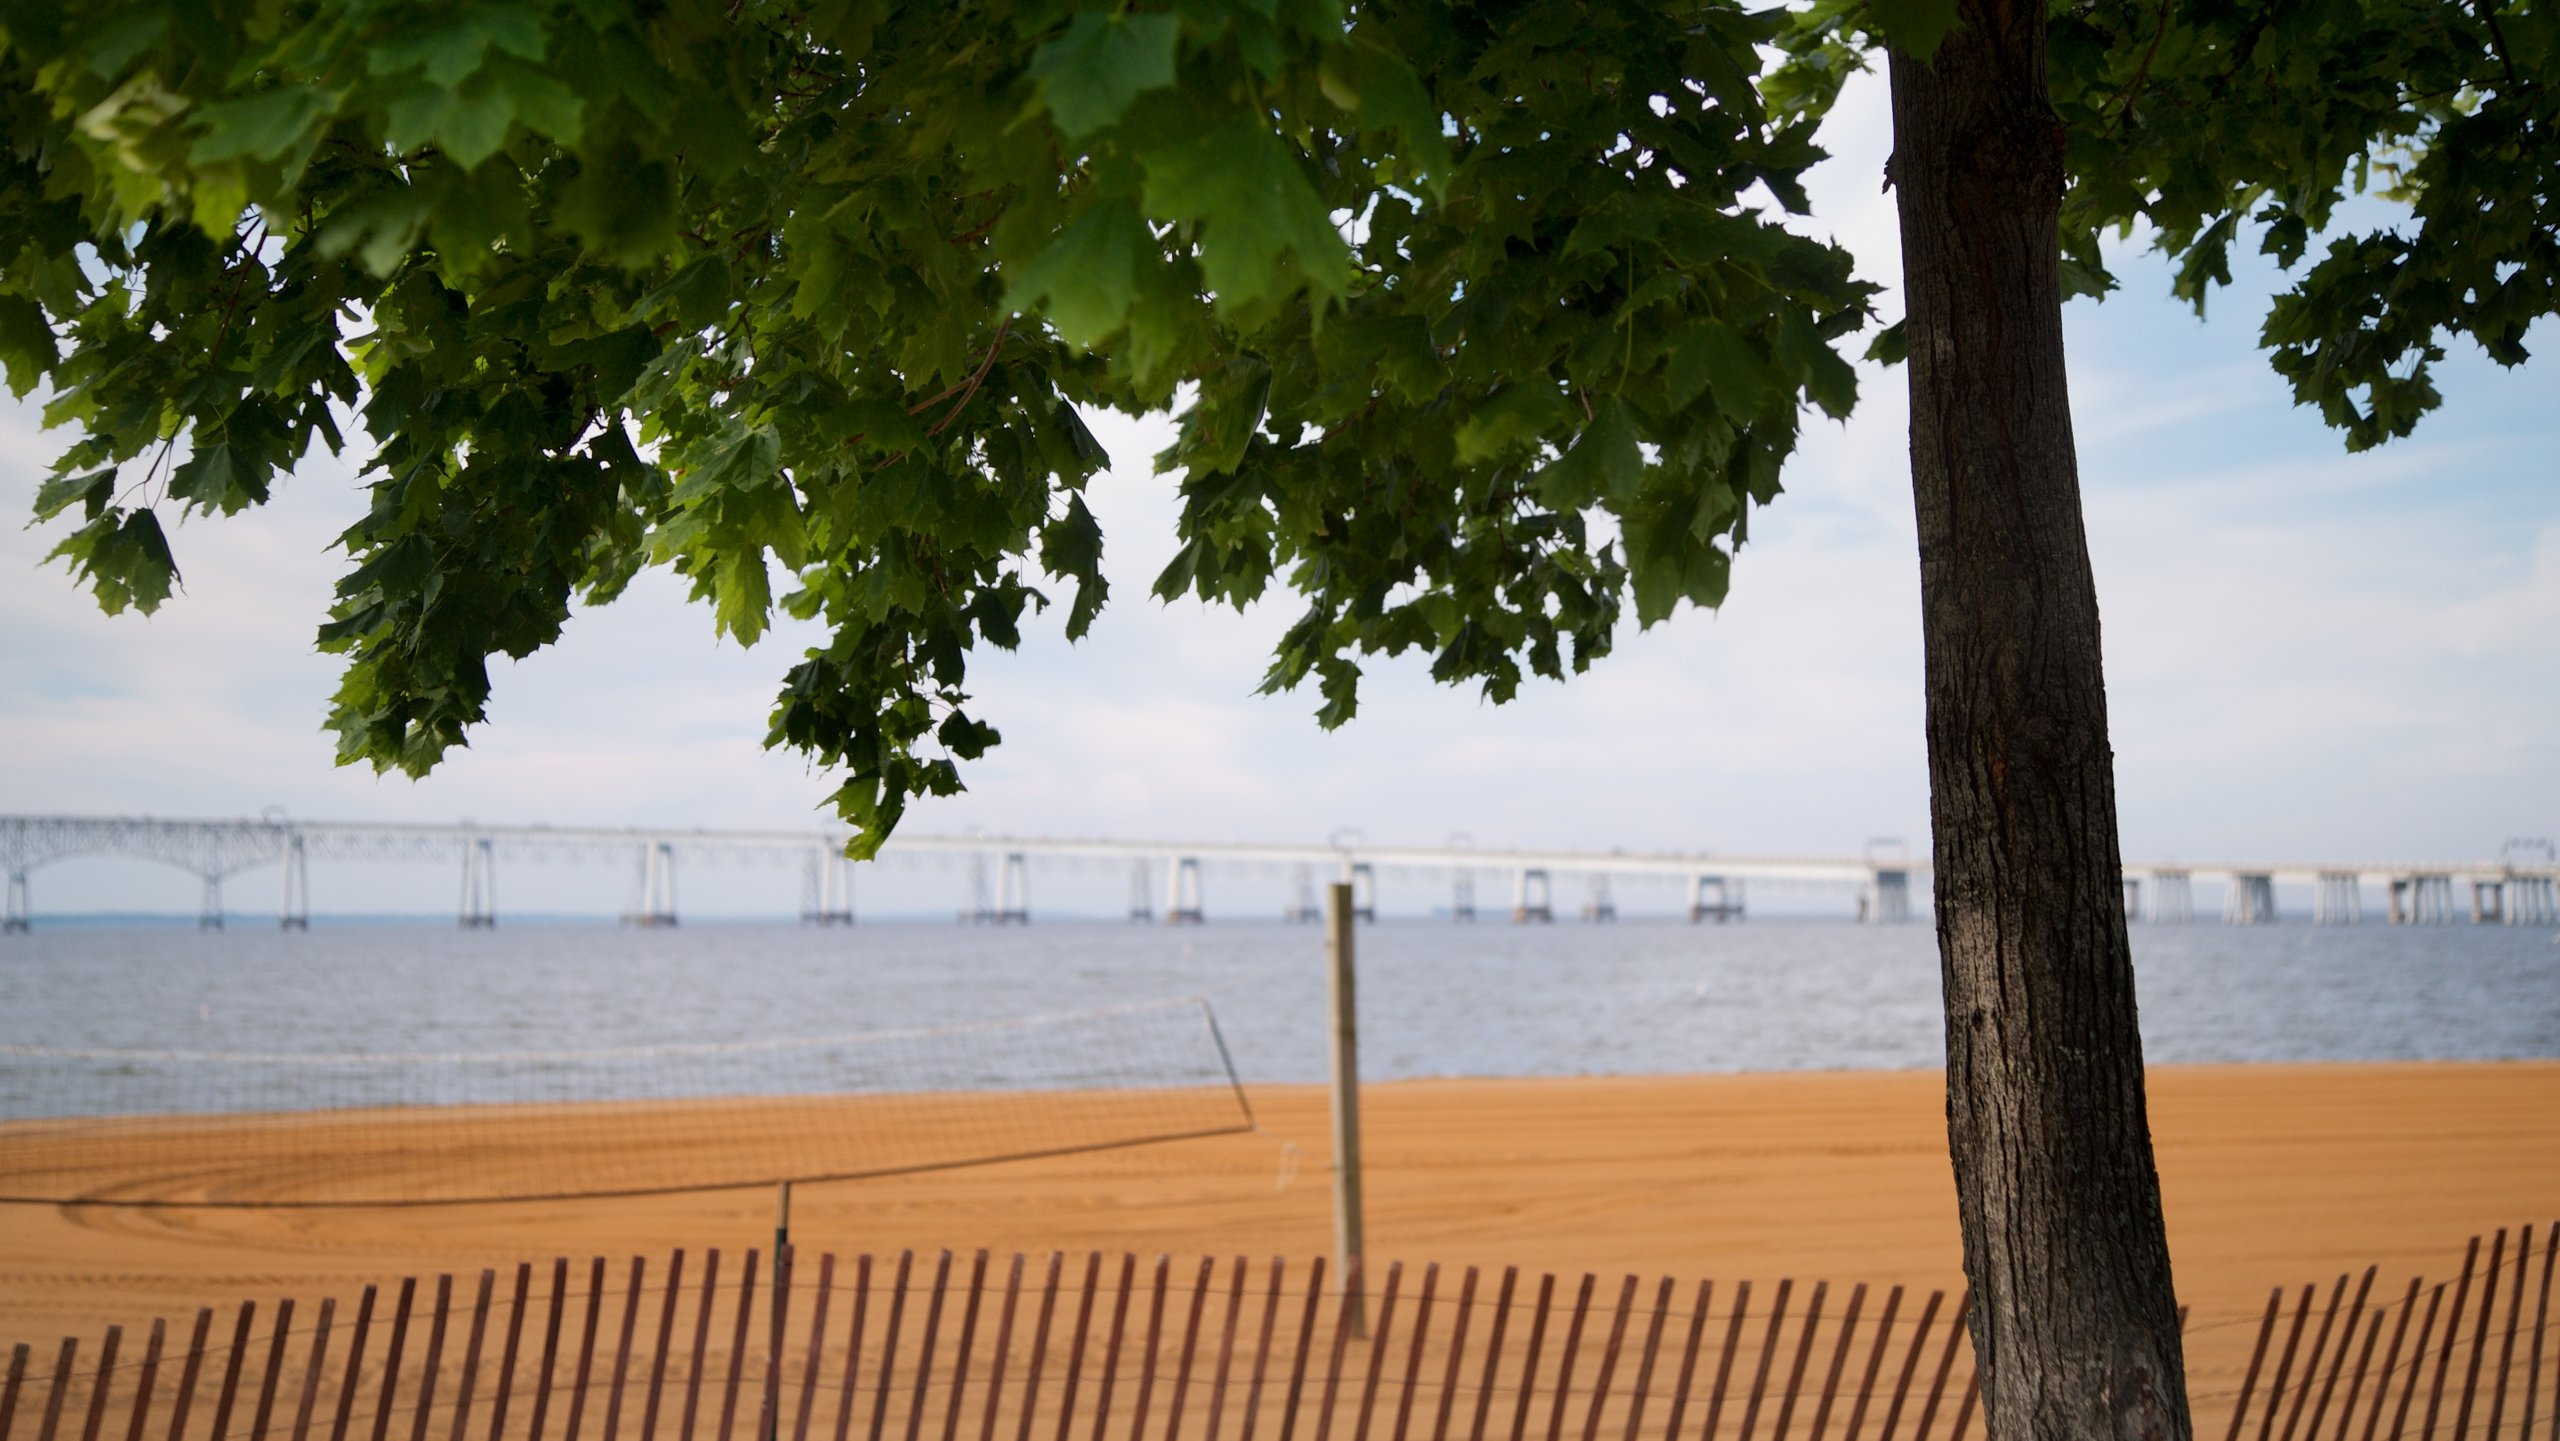 Sandy Point State Park, Annapolis, Maryland, United States of America